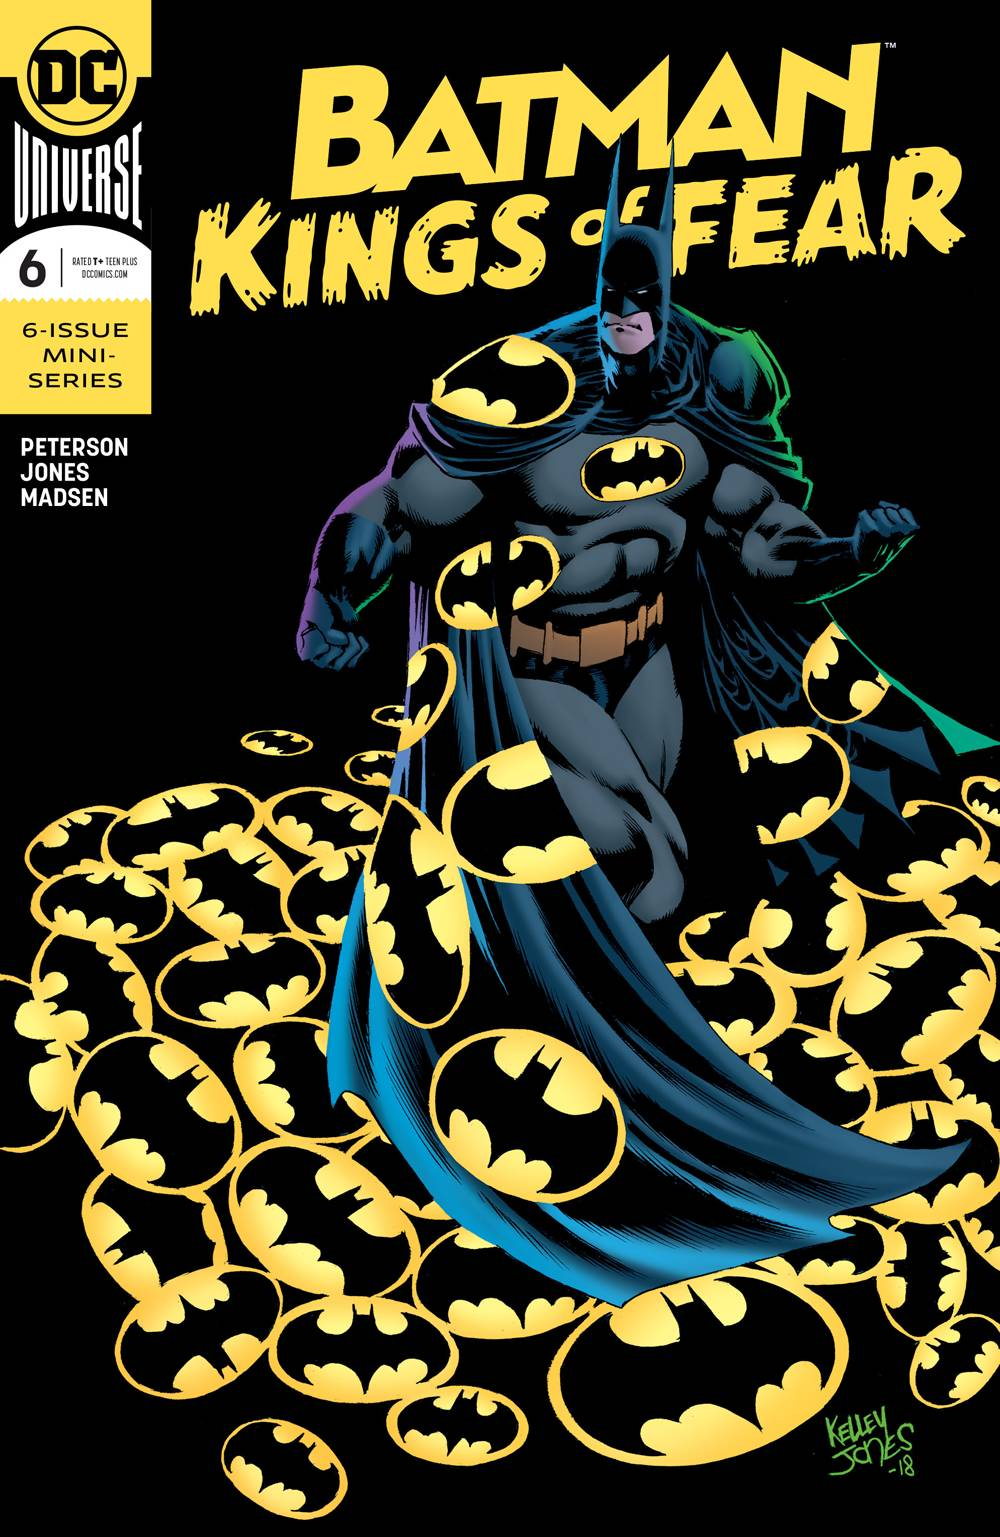 BATMAN KINGS OF FEAR 6 of 6.jpg